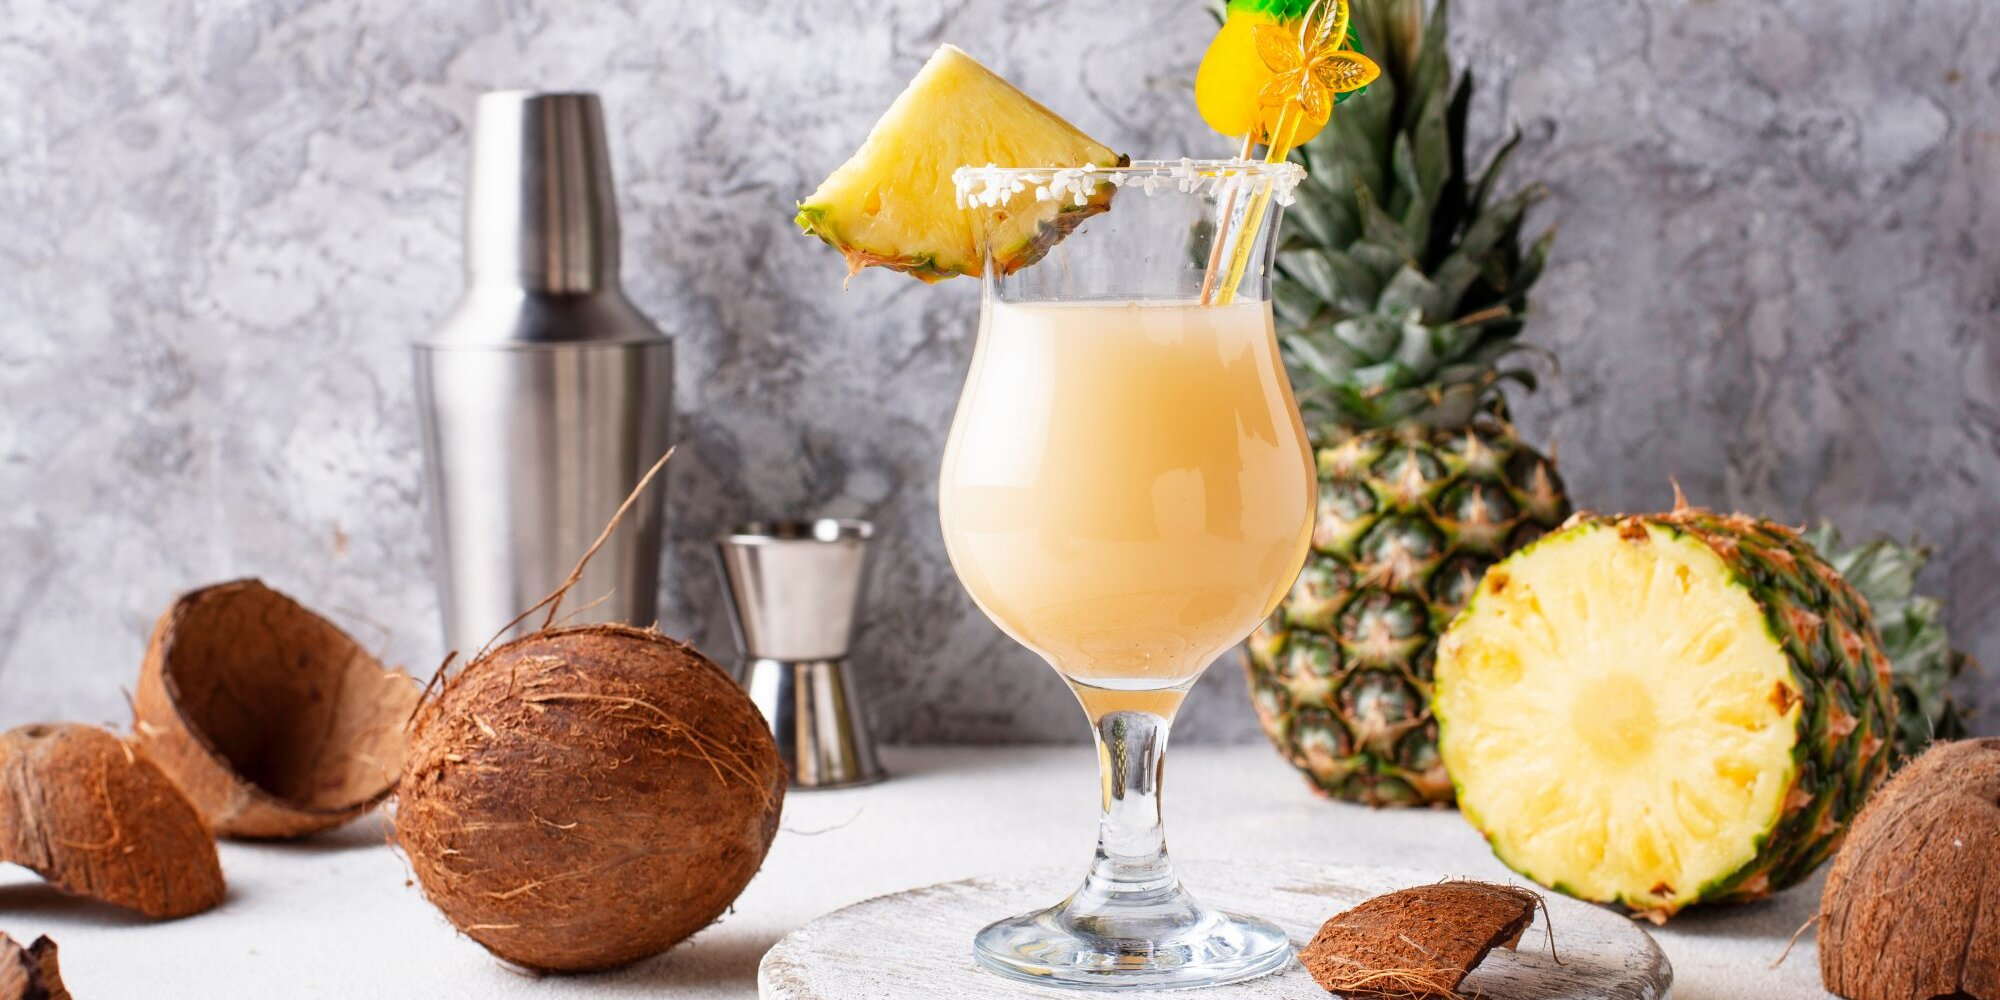 This Piña Colada Recipe Will Make You Feel Like You're on Vacation